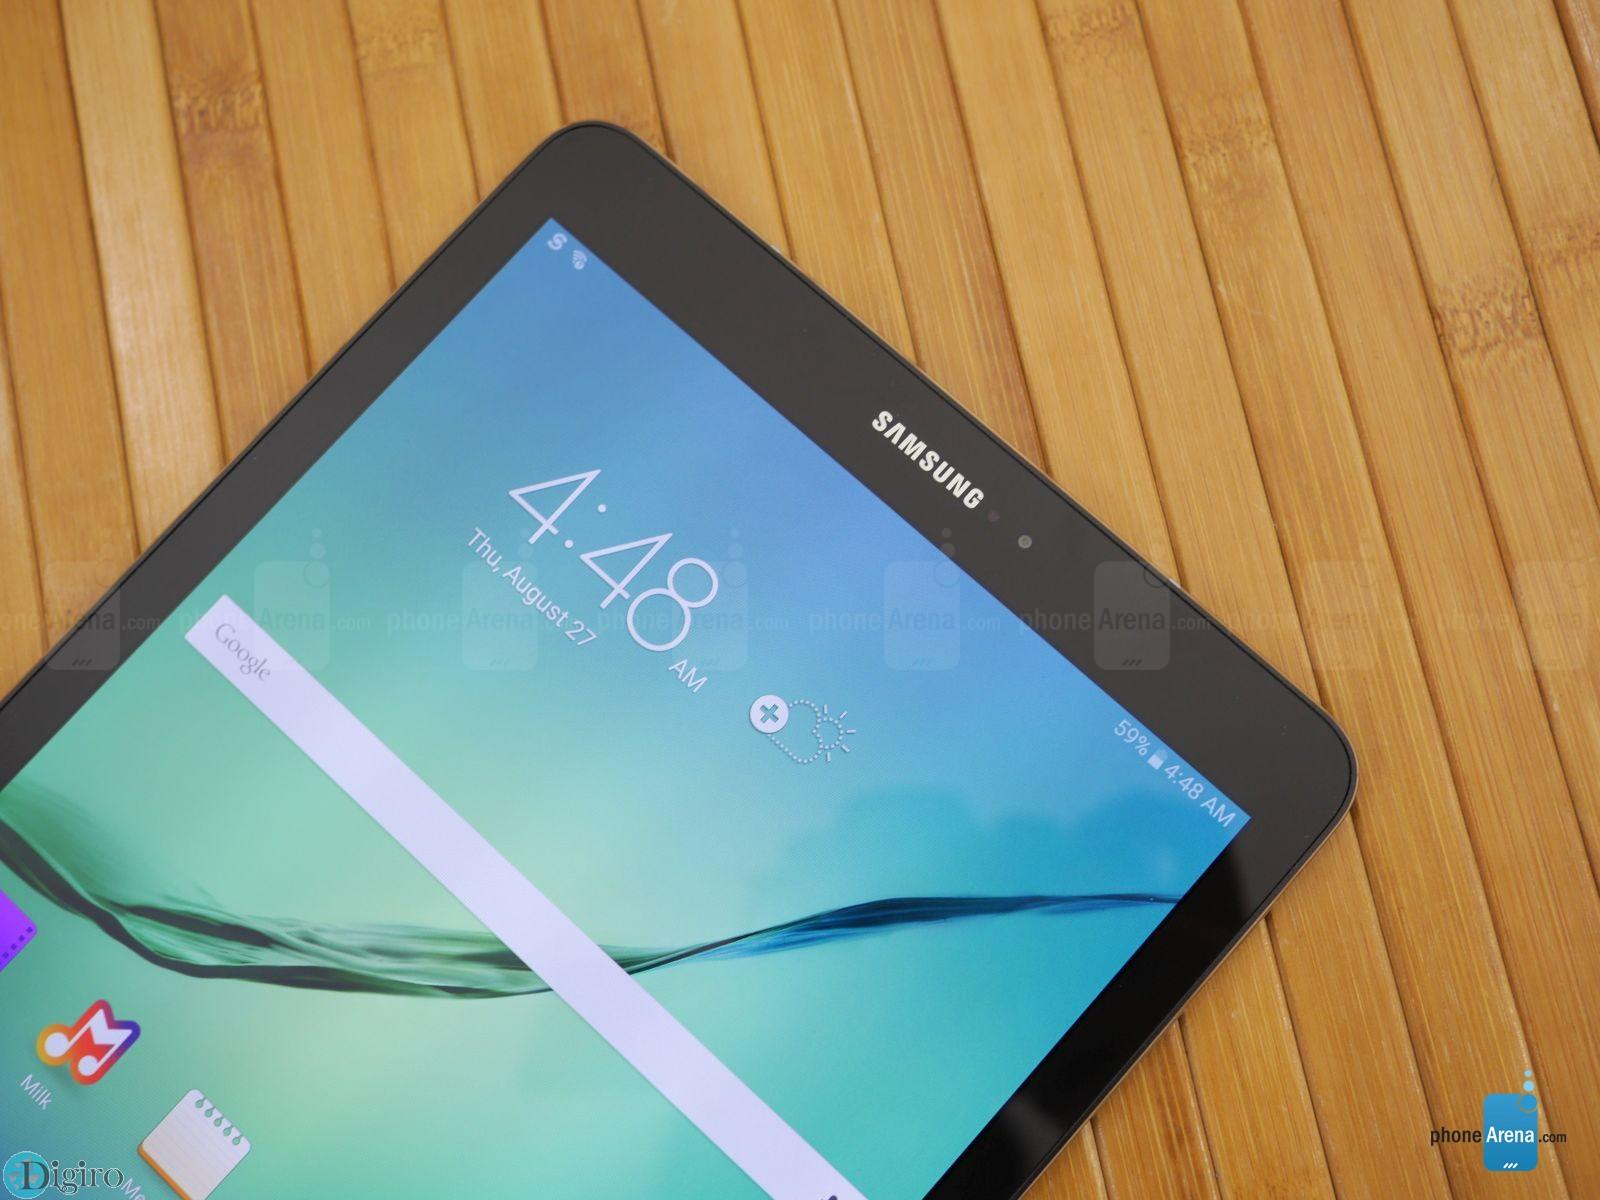 Samsung-Galaxy-Tab-S2-9.7-inch-hands-on--amp-unboxing (6)